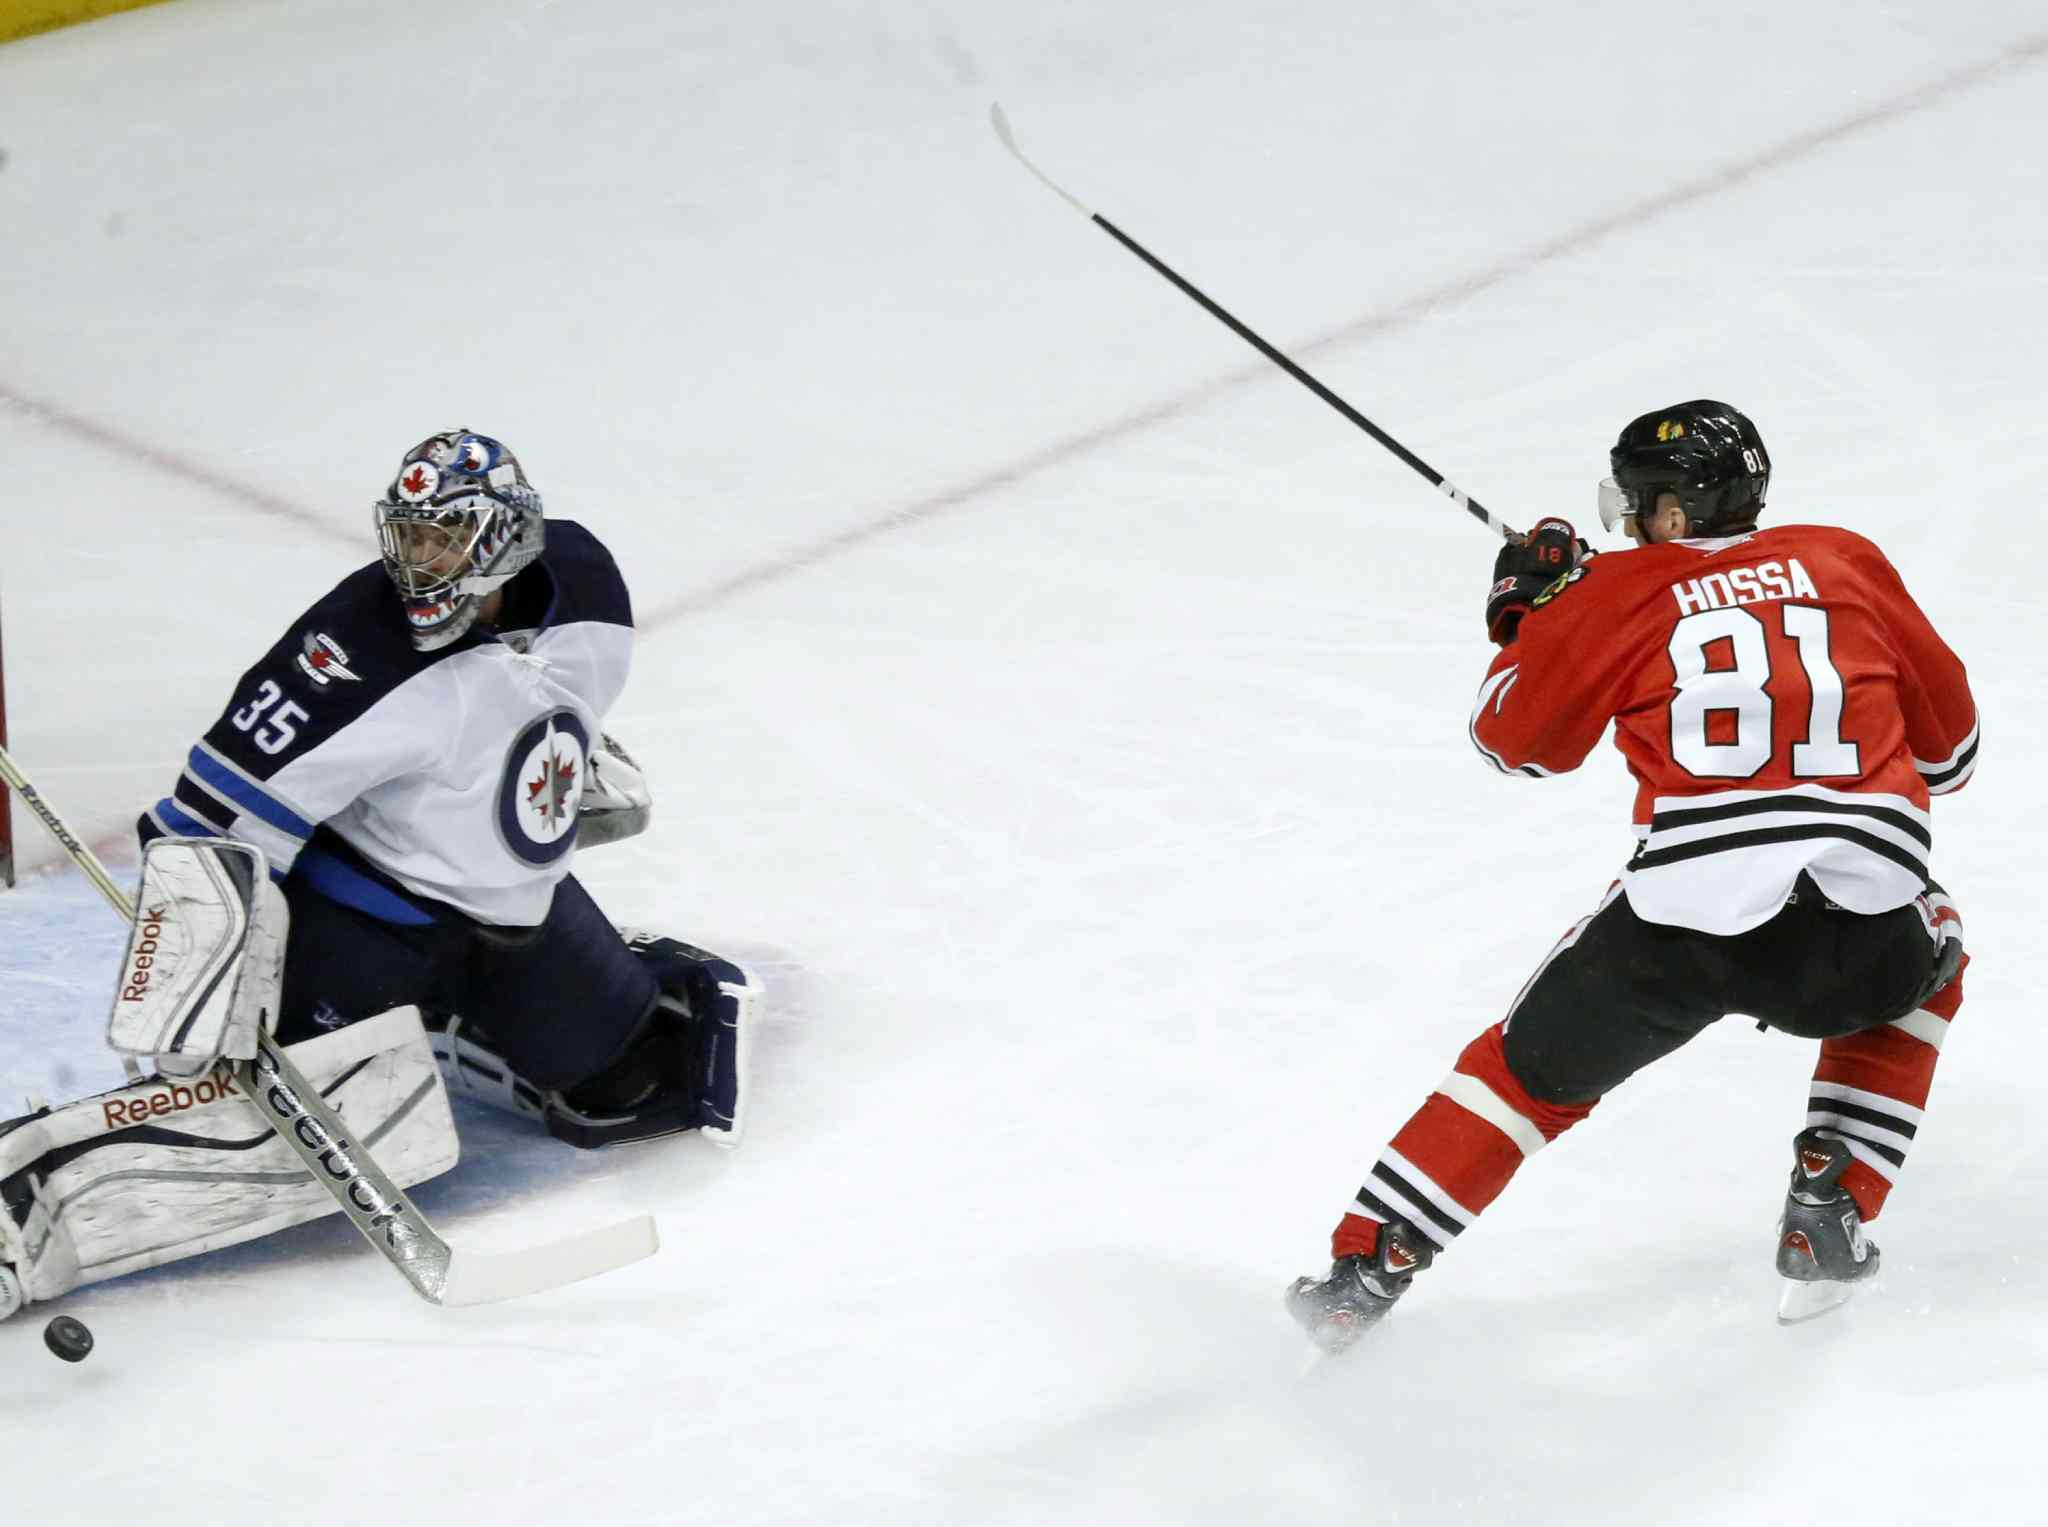 Jets goalie Al Montoya makes a save on a break away by Blackhawks forward Marian Hossa. in Chicago. (AP Photo/Charles Rex Arbogast)